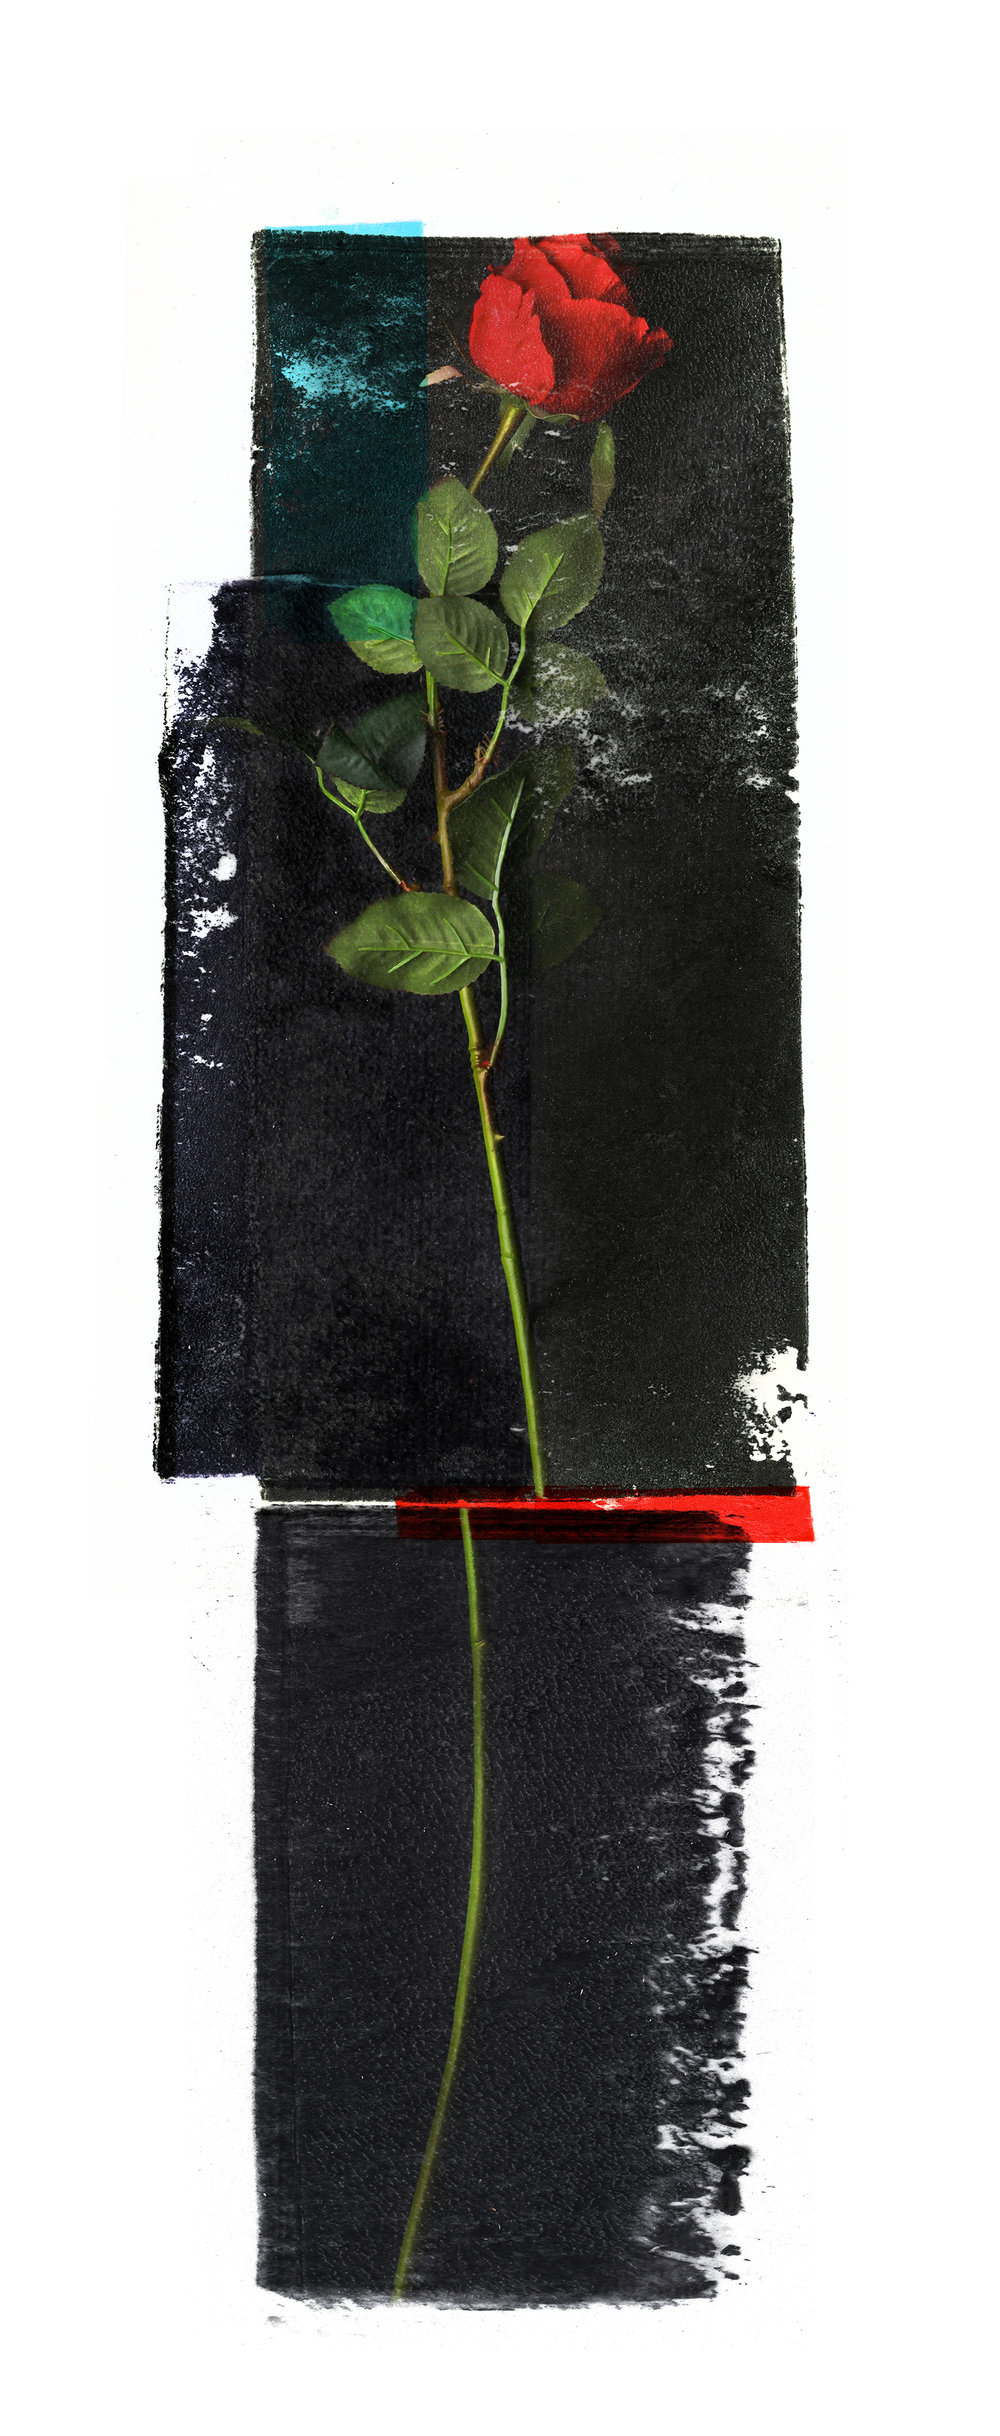 Cure ( Rose )   Original pigment print / BFK rives 250 gr 56 x 25 cm / 22 x 9,8 in Edition of 50 + 7 Ap Editeur: Per Fronth Studios / Henrik Aunevik  31/2014: